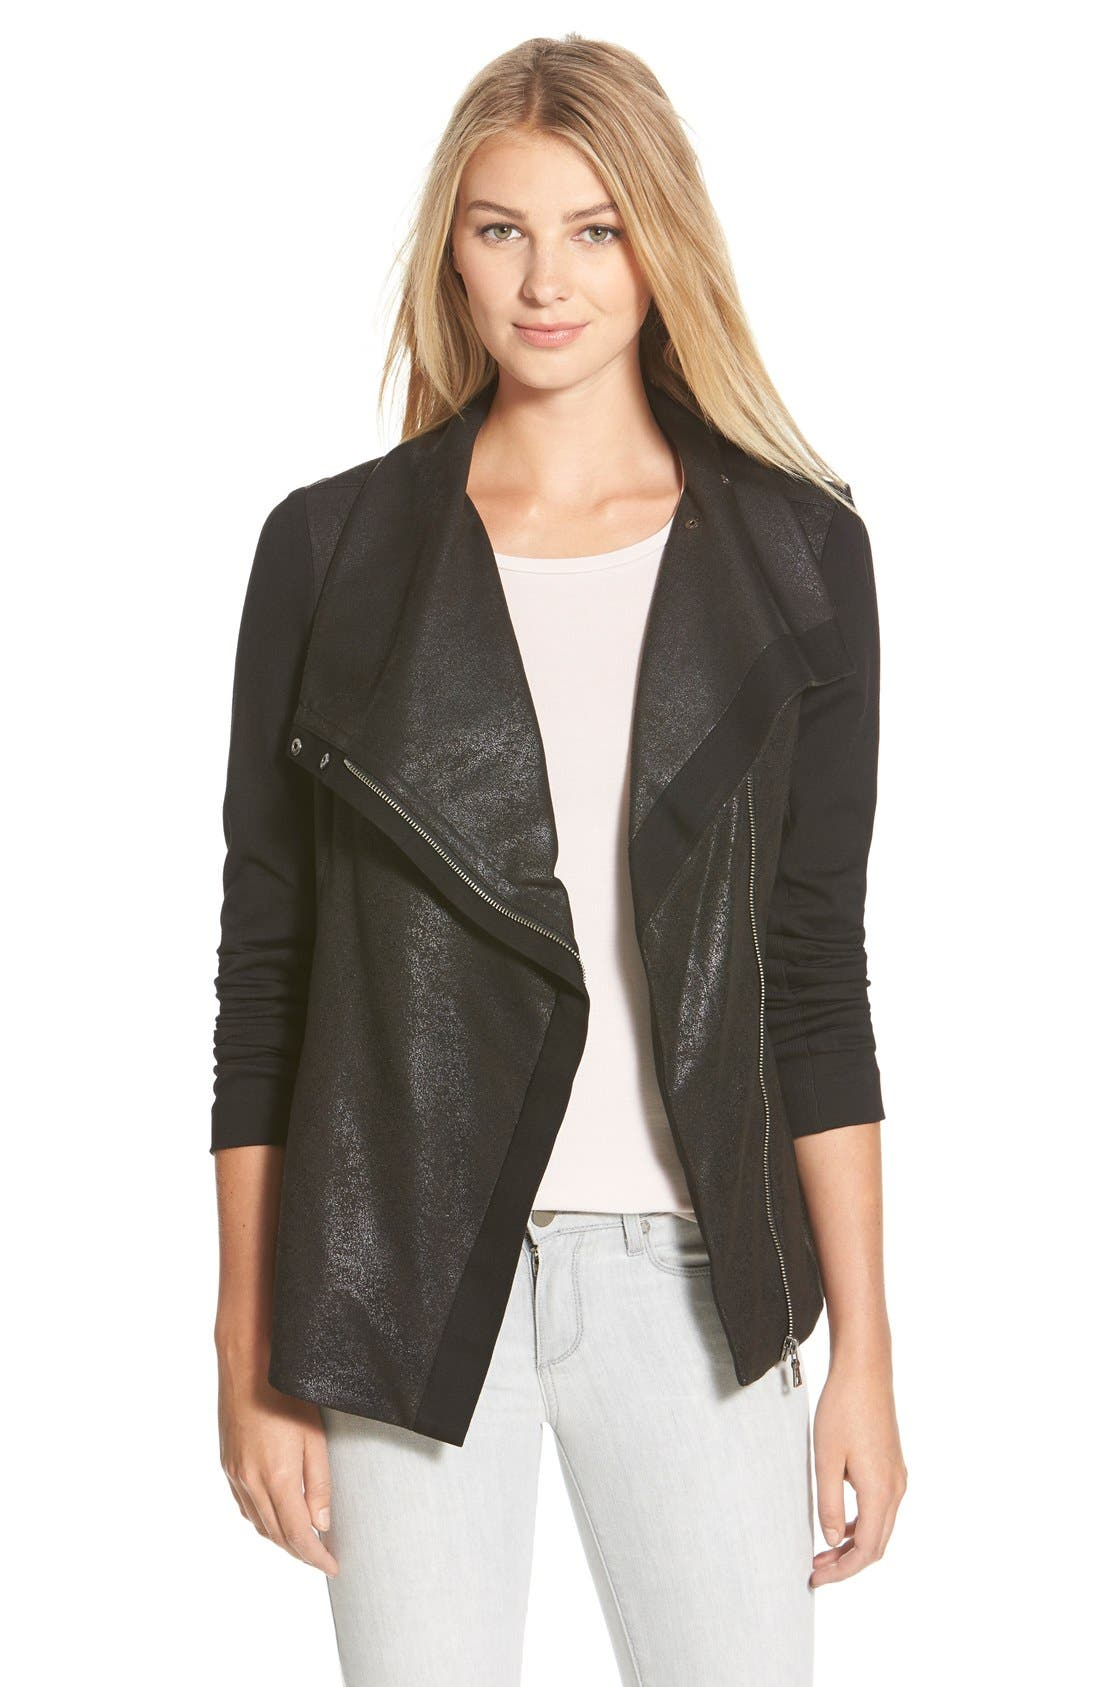 Distressed Foil Ponte Knit Asymmetrical Jacket,                         Main,                         color, 006